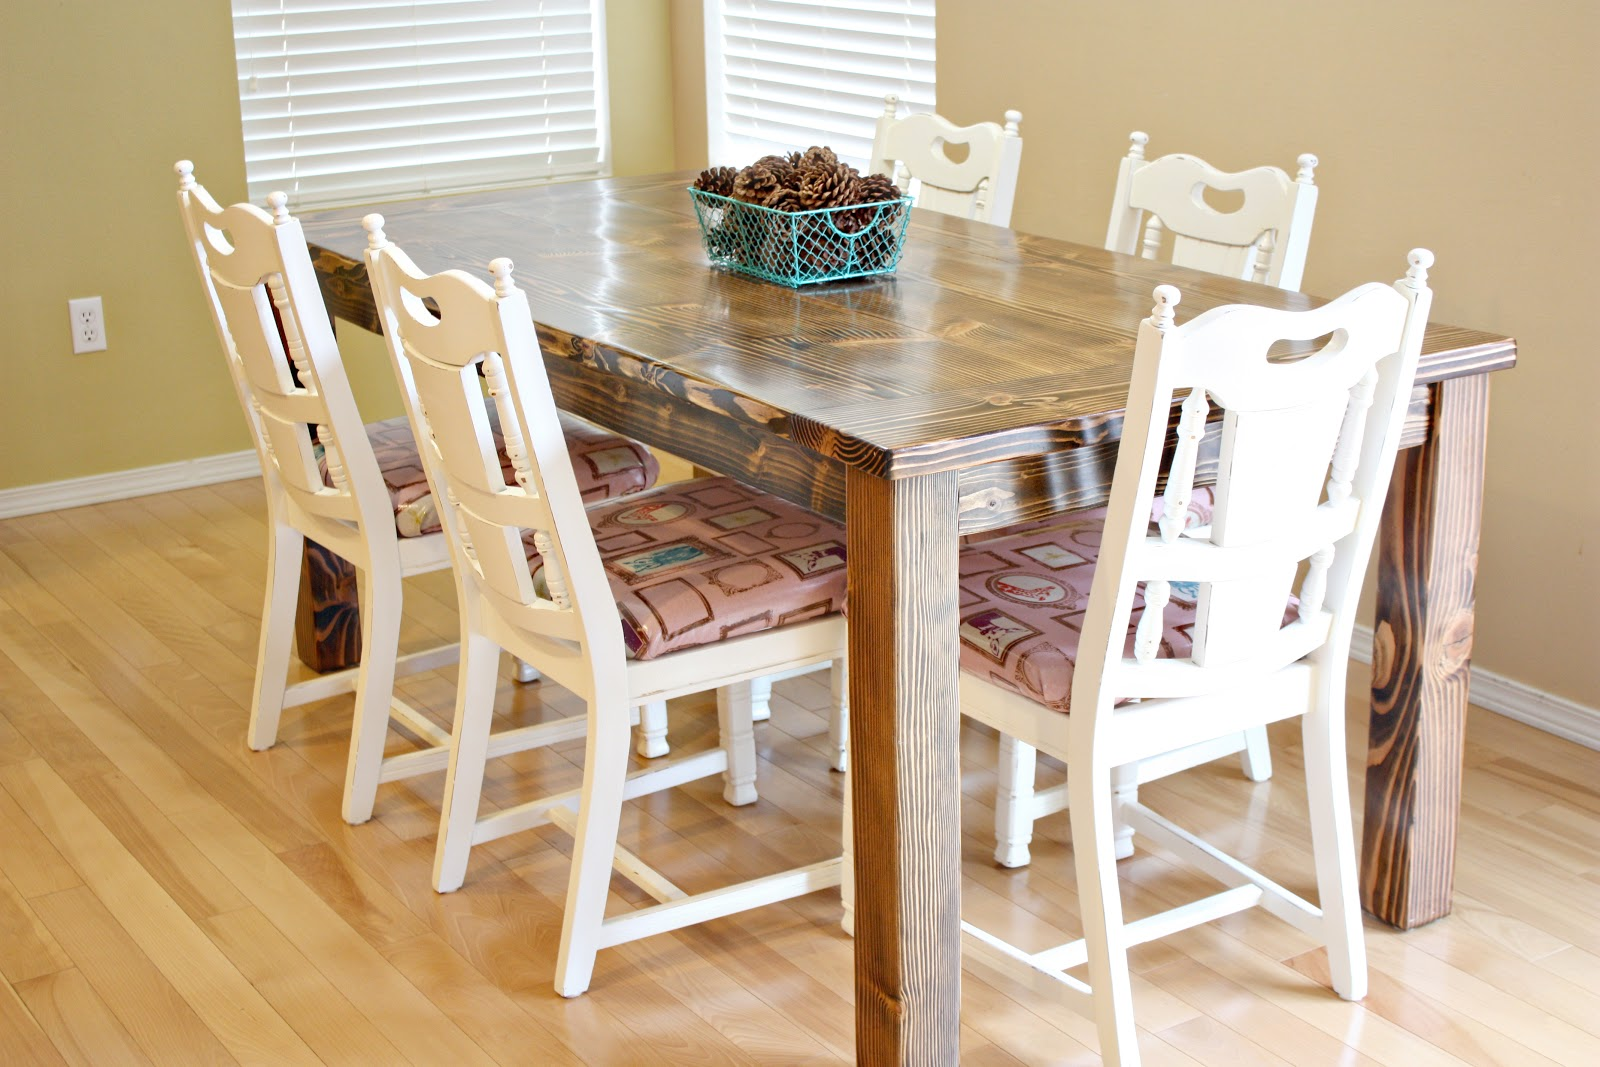 Dining room chair reupholstery cost